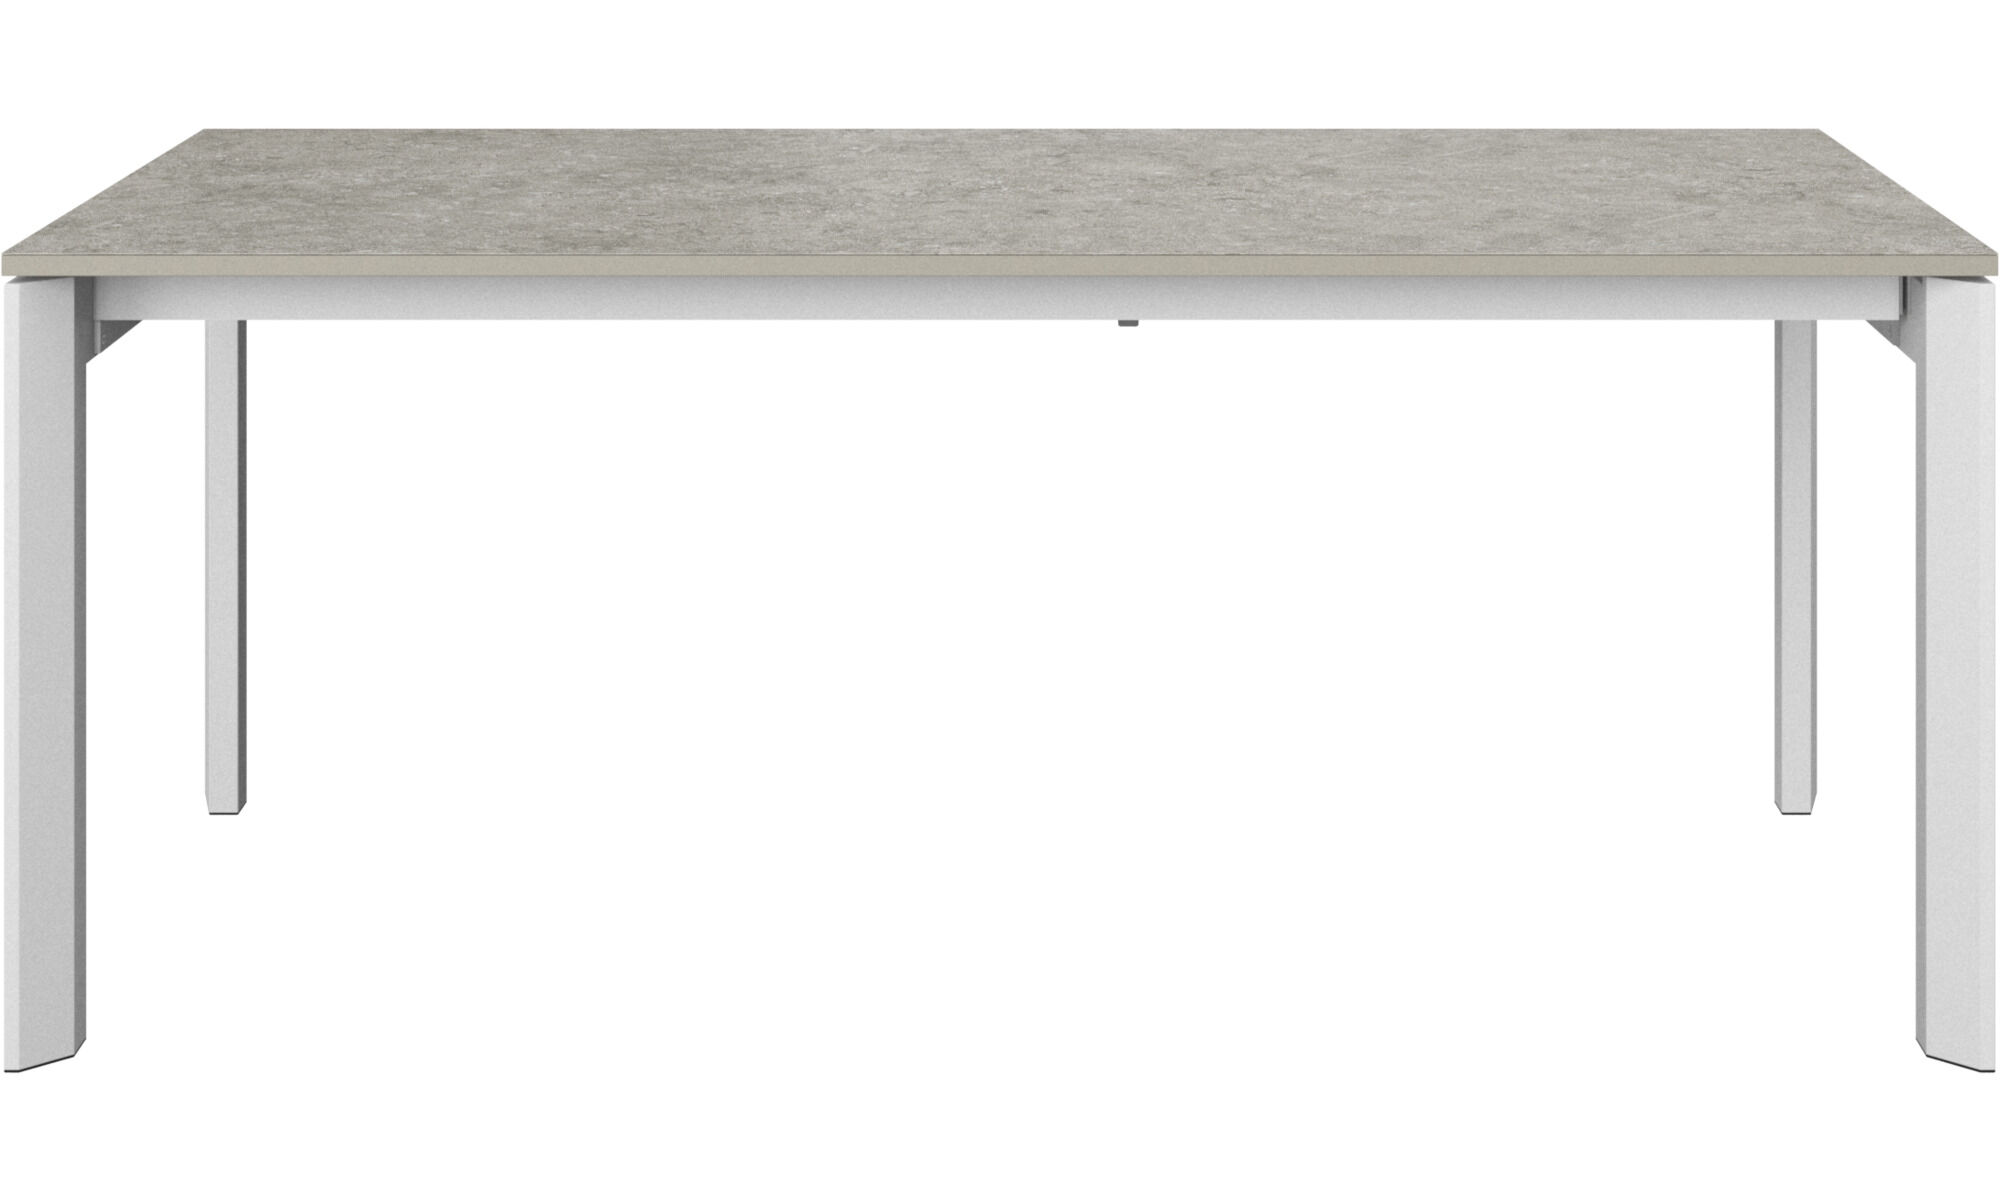 Lyon table with supplementary tabletop